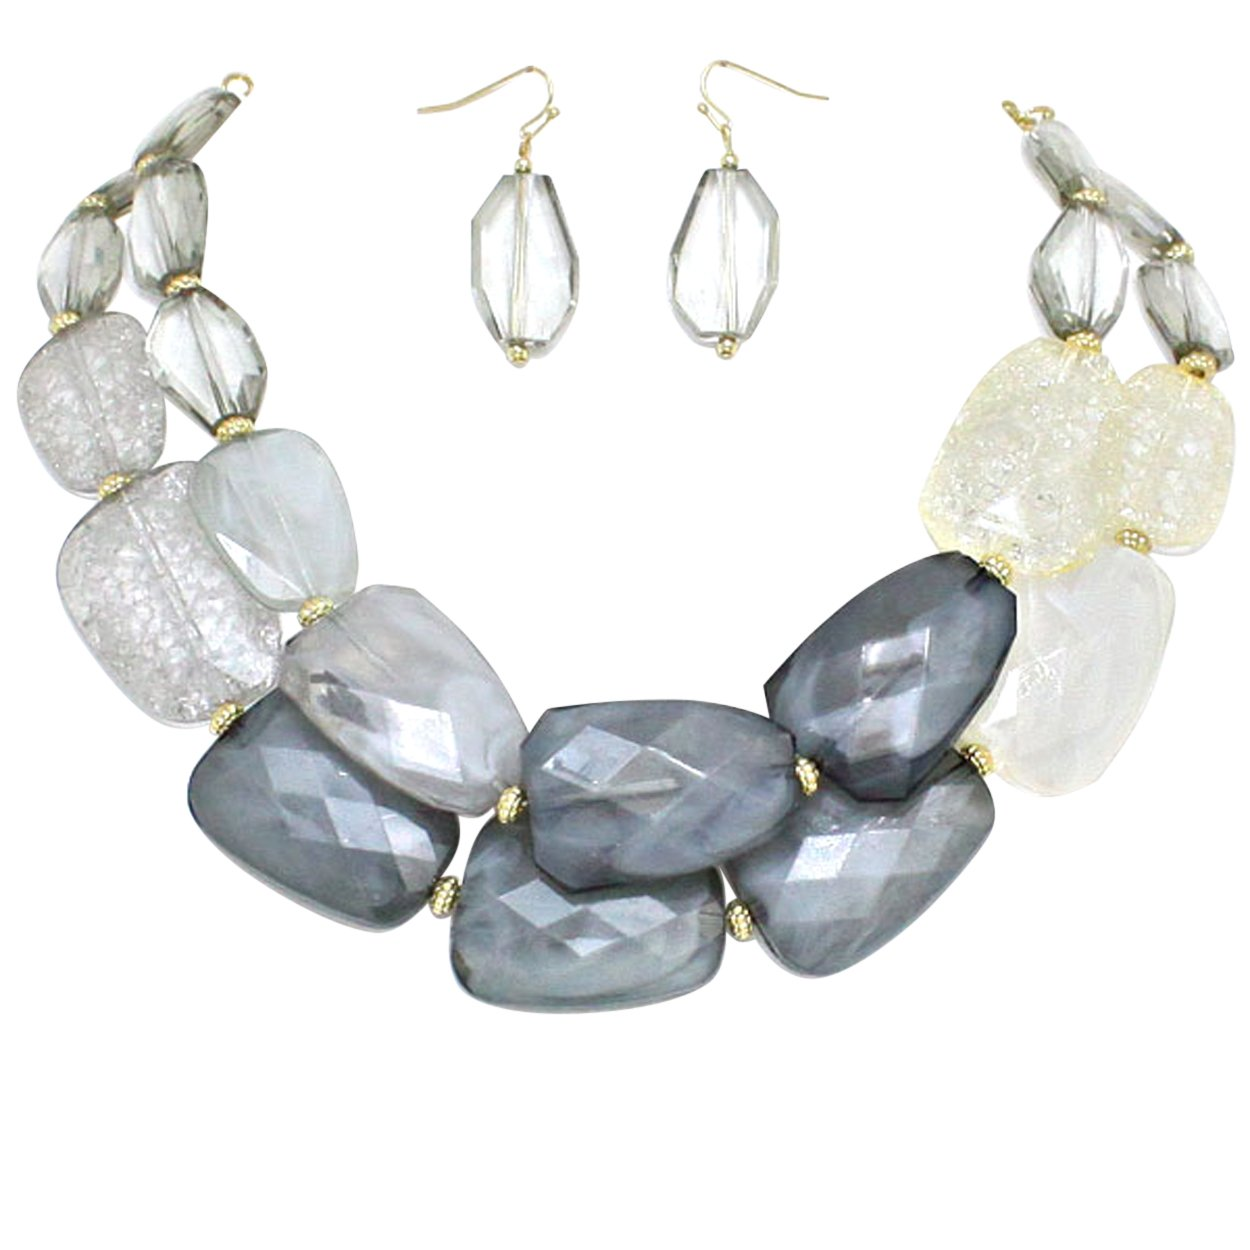 Rosemarie Collections Women's Ombre Polished Resin Statement Necklace Earring Set (Gray and Clear)